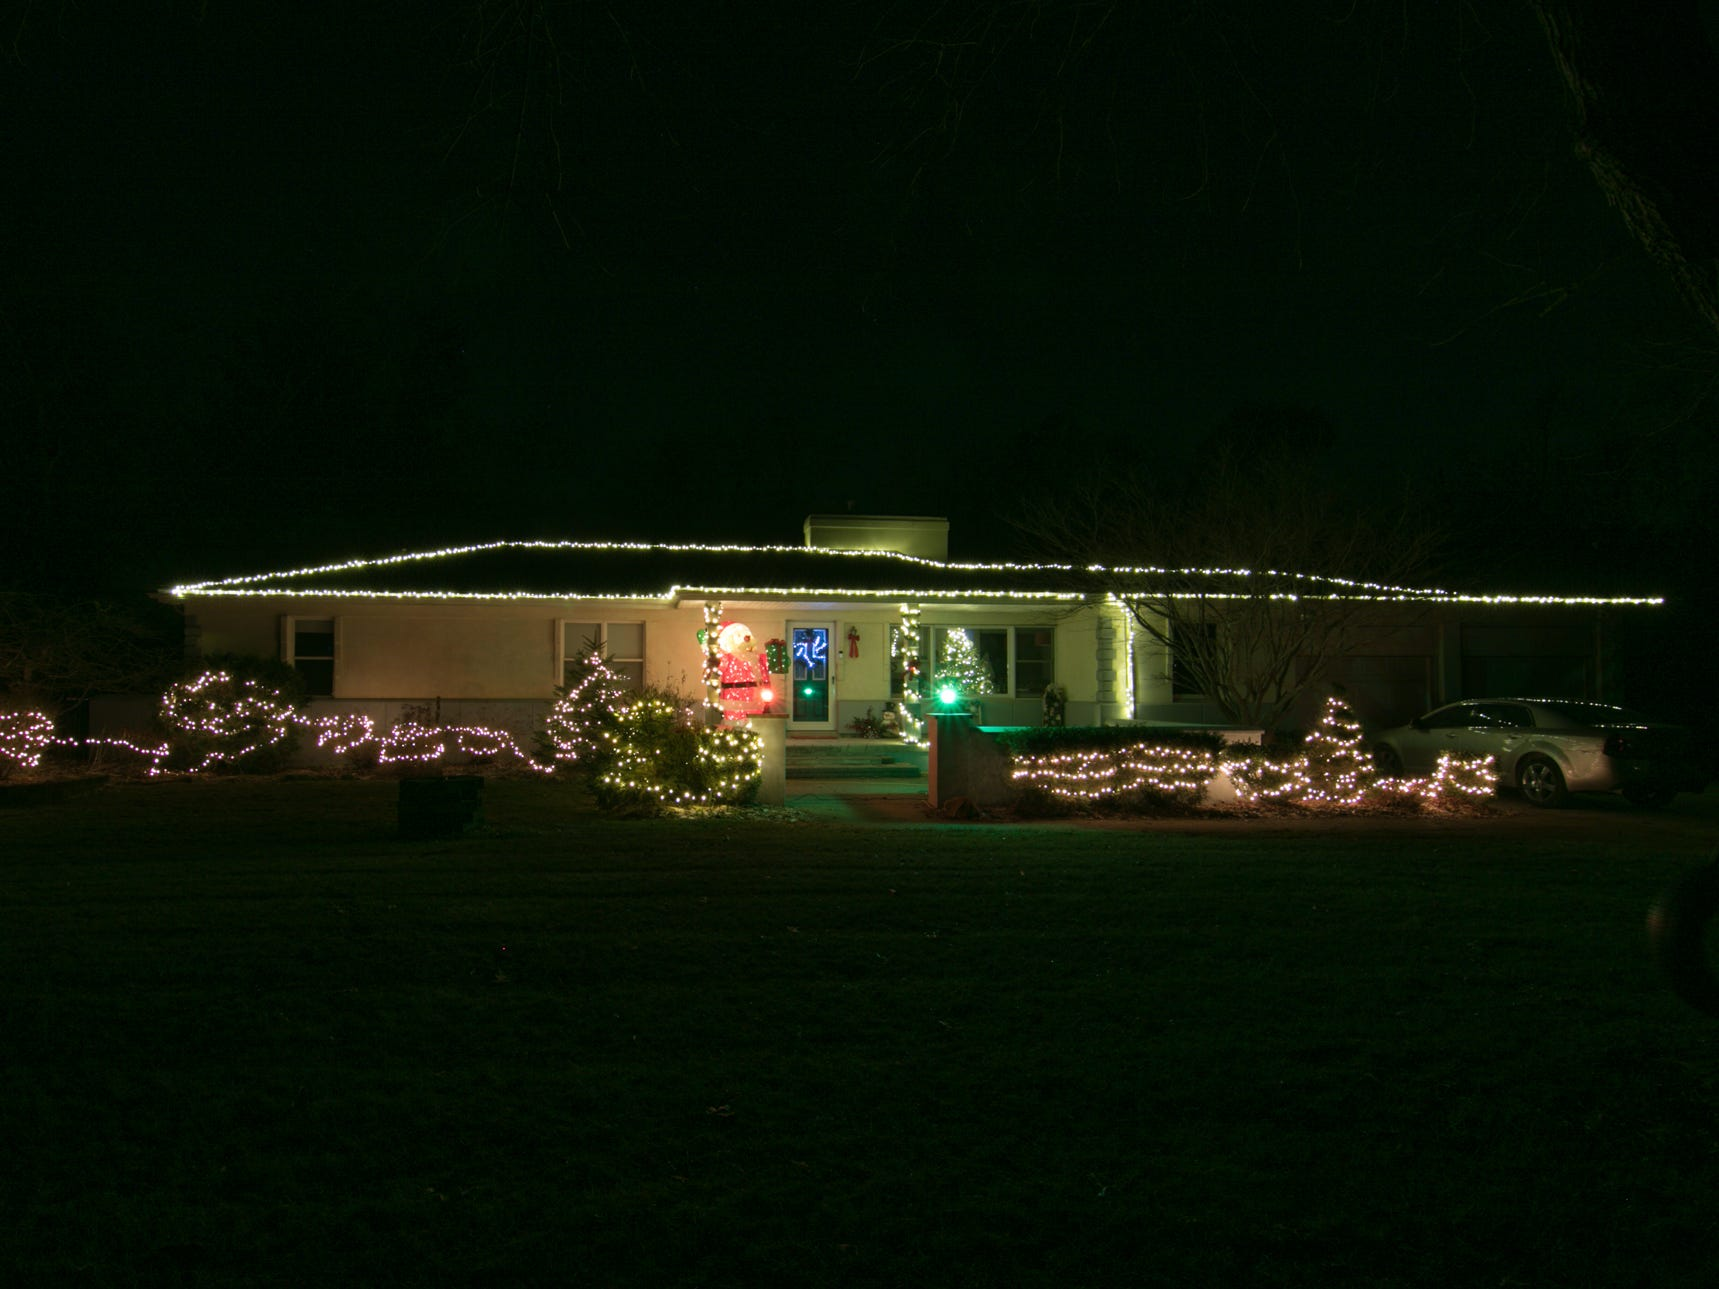 8730 Bishop Rd., Brighton, the home of Andrew Schwab, shown Tuesday, Dec. 4, 2018. Vote on your favorite home by emailing gbenedict@livingstondaily.com by midnight of Jan. 2, 2019.